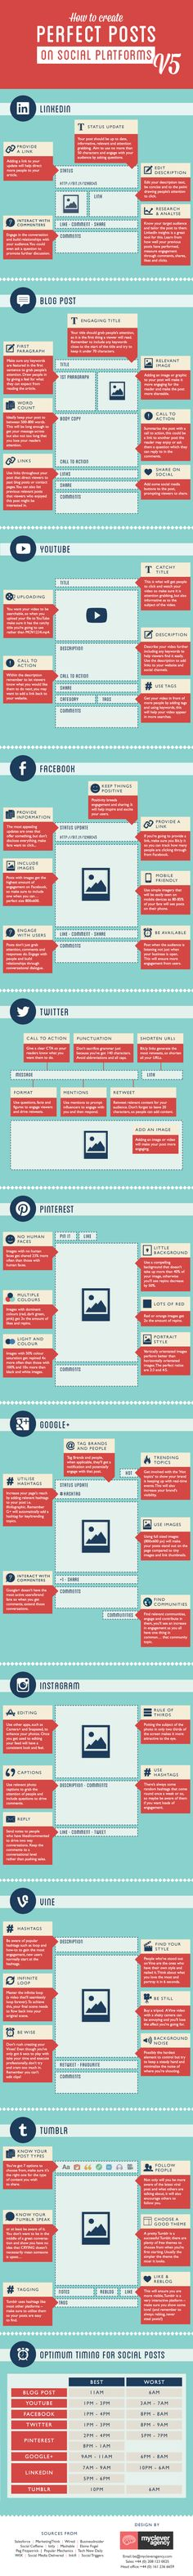 2015 Marketer Fundamentals - Check Out How To Create Perfect Posts on Most Popular Social Platforms!